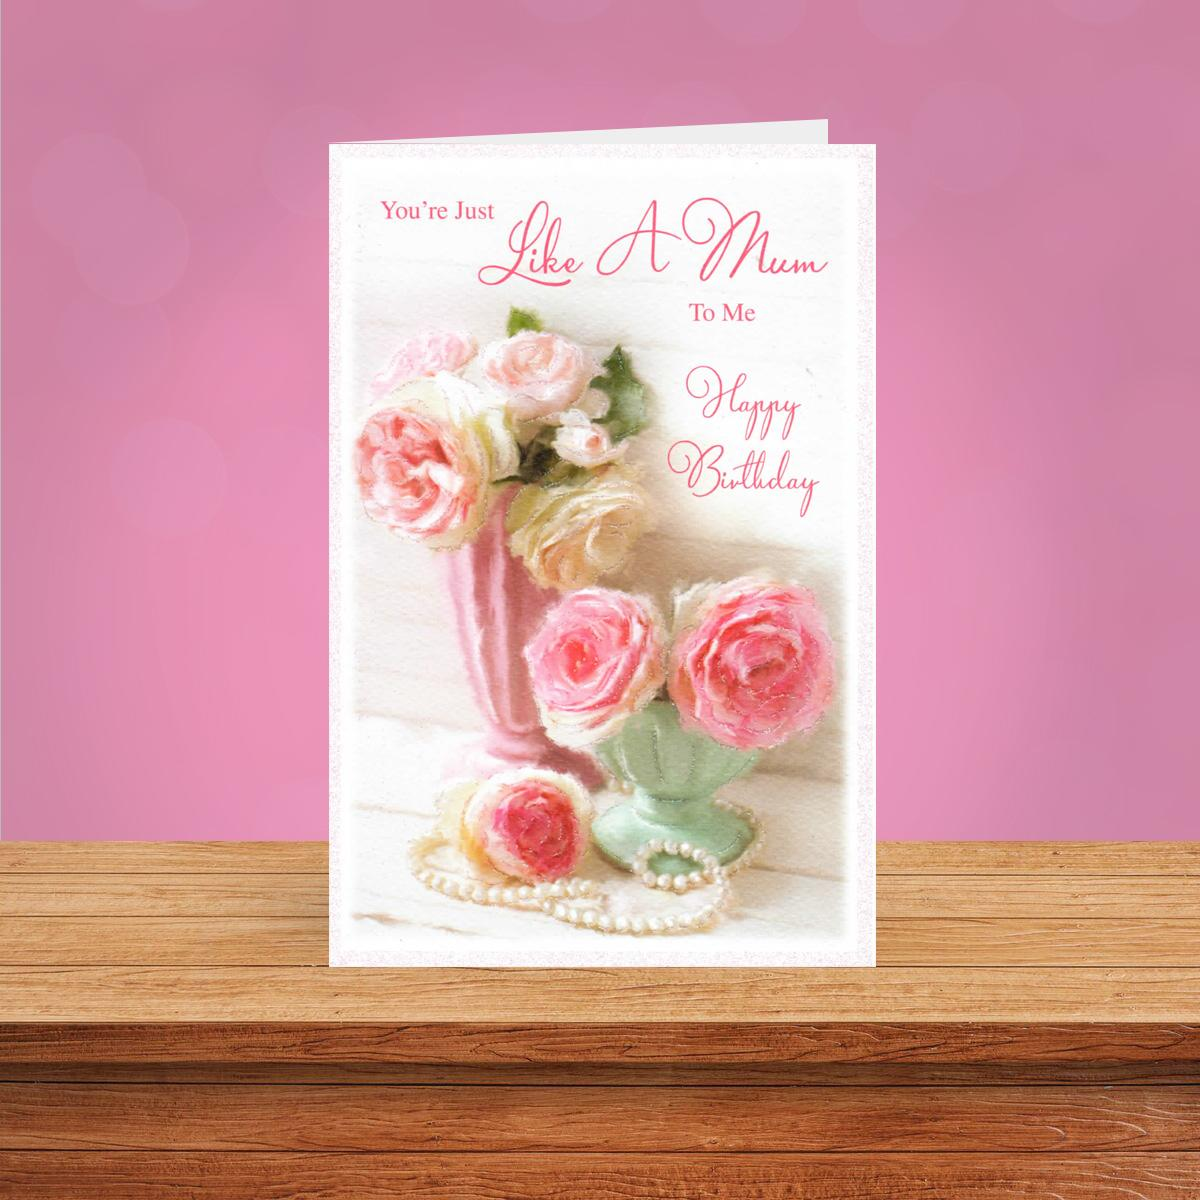 Like A Mum Birthday Card Displayed On A Wooden Shelf